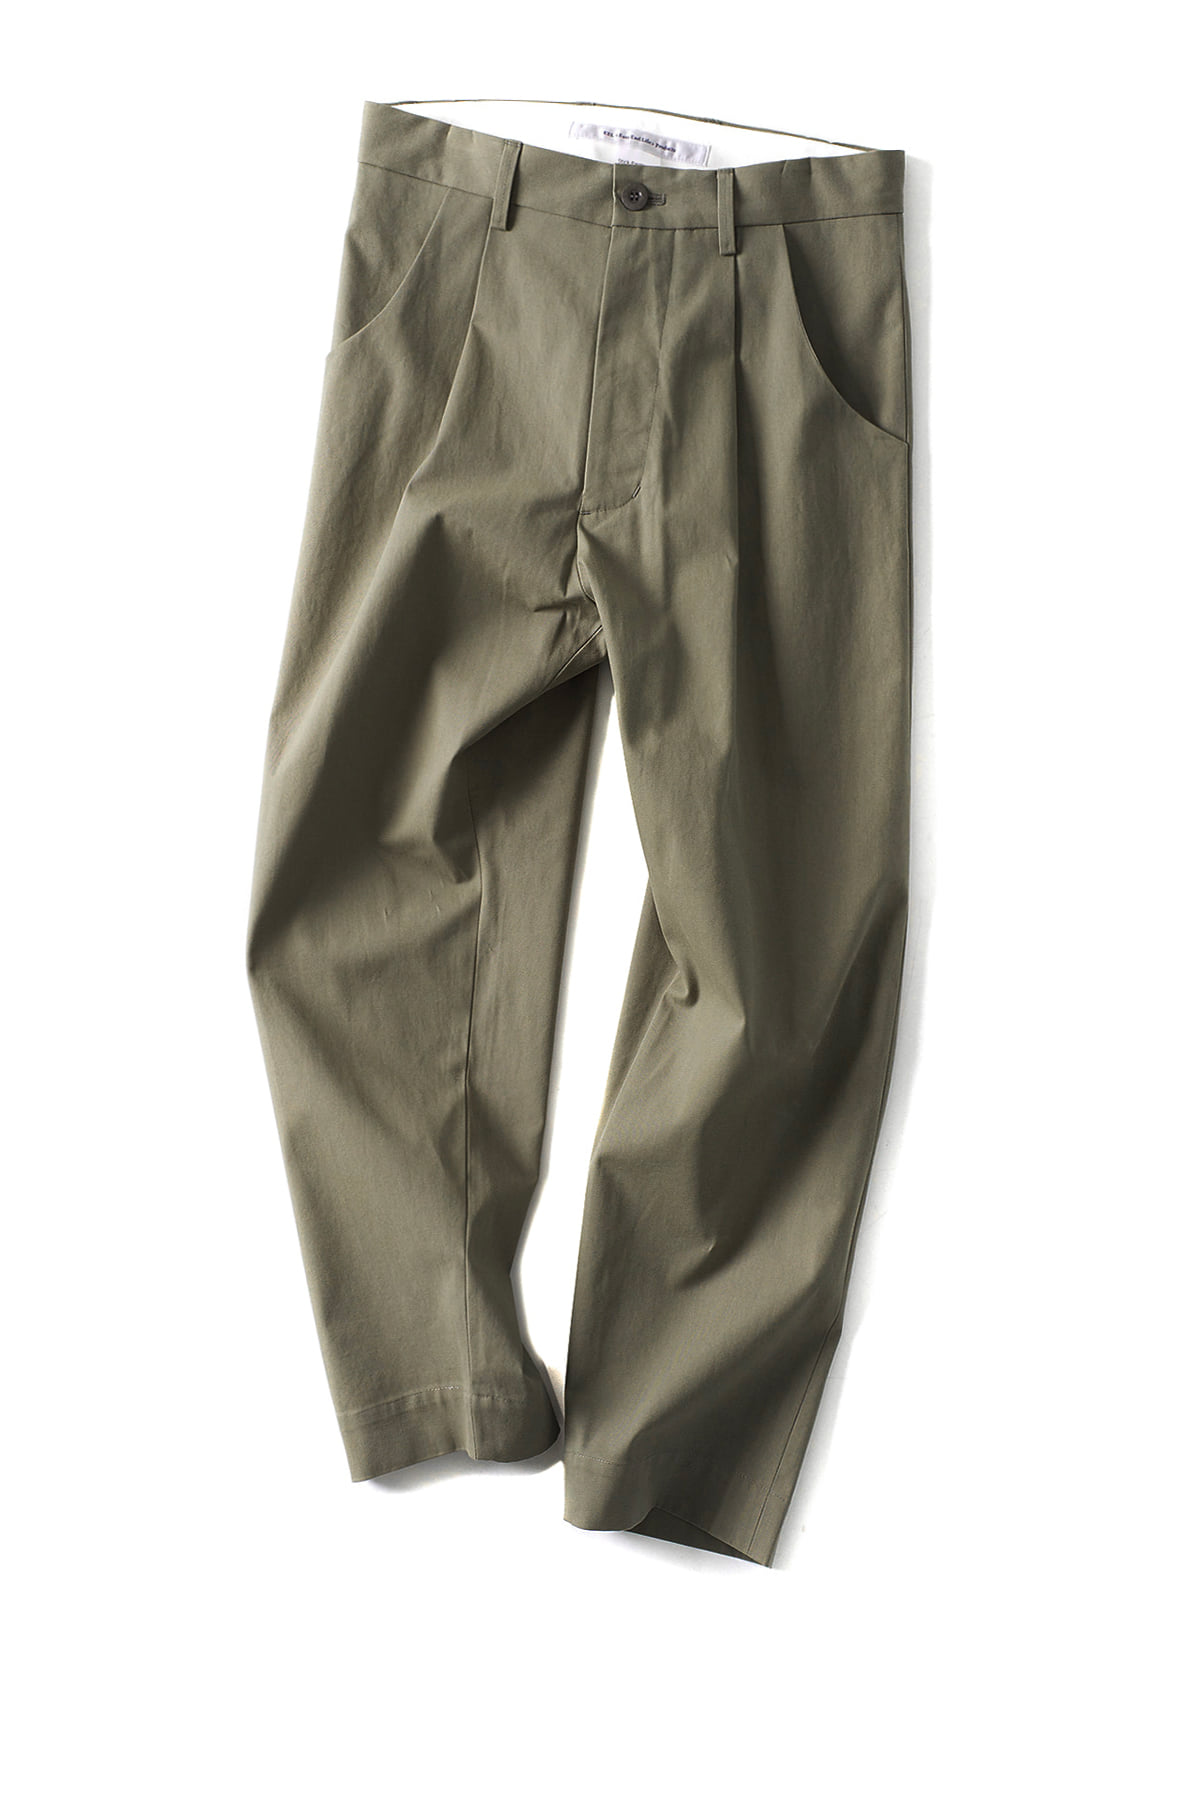 EEL : Stick Pants (Olive)